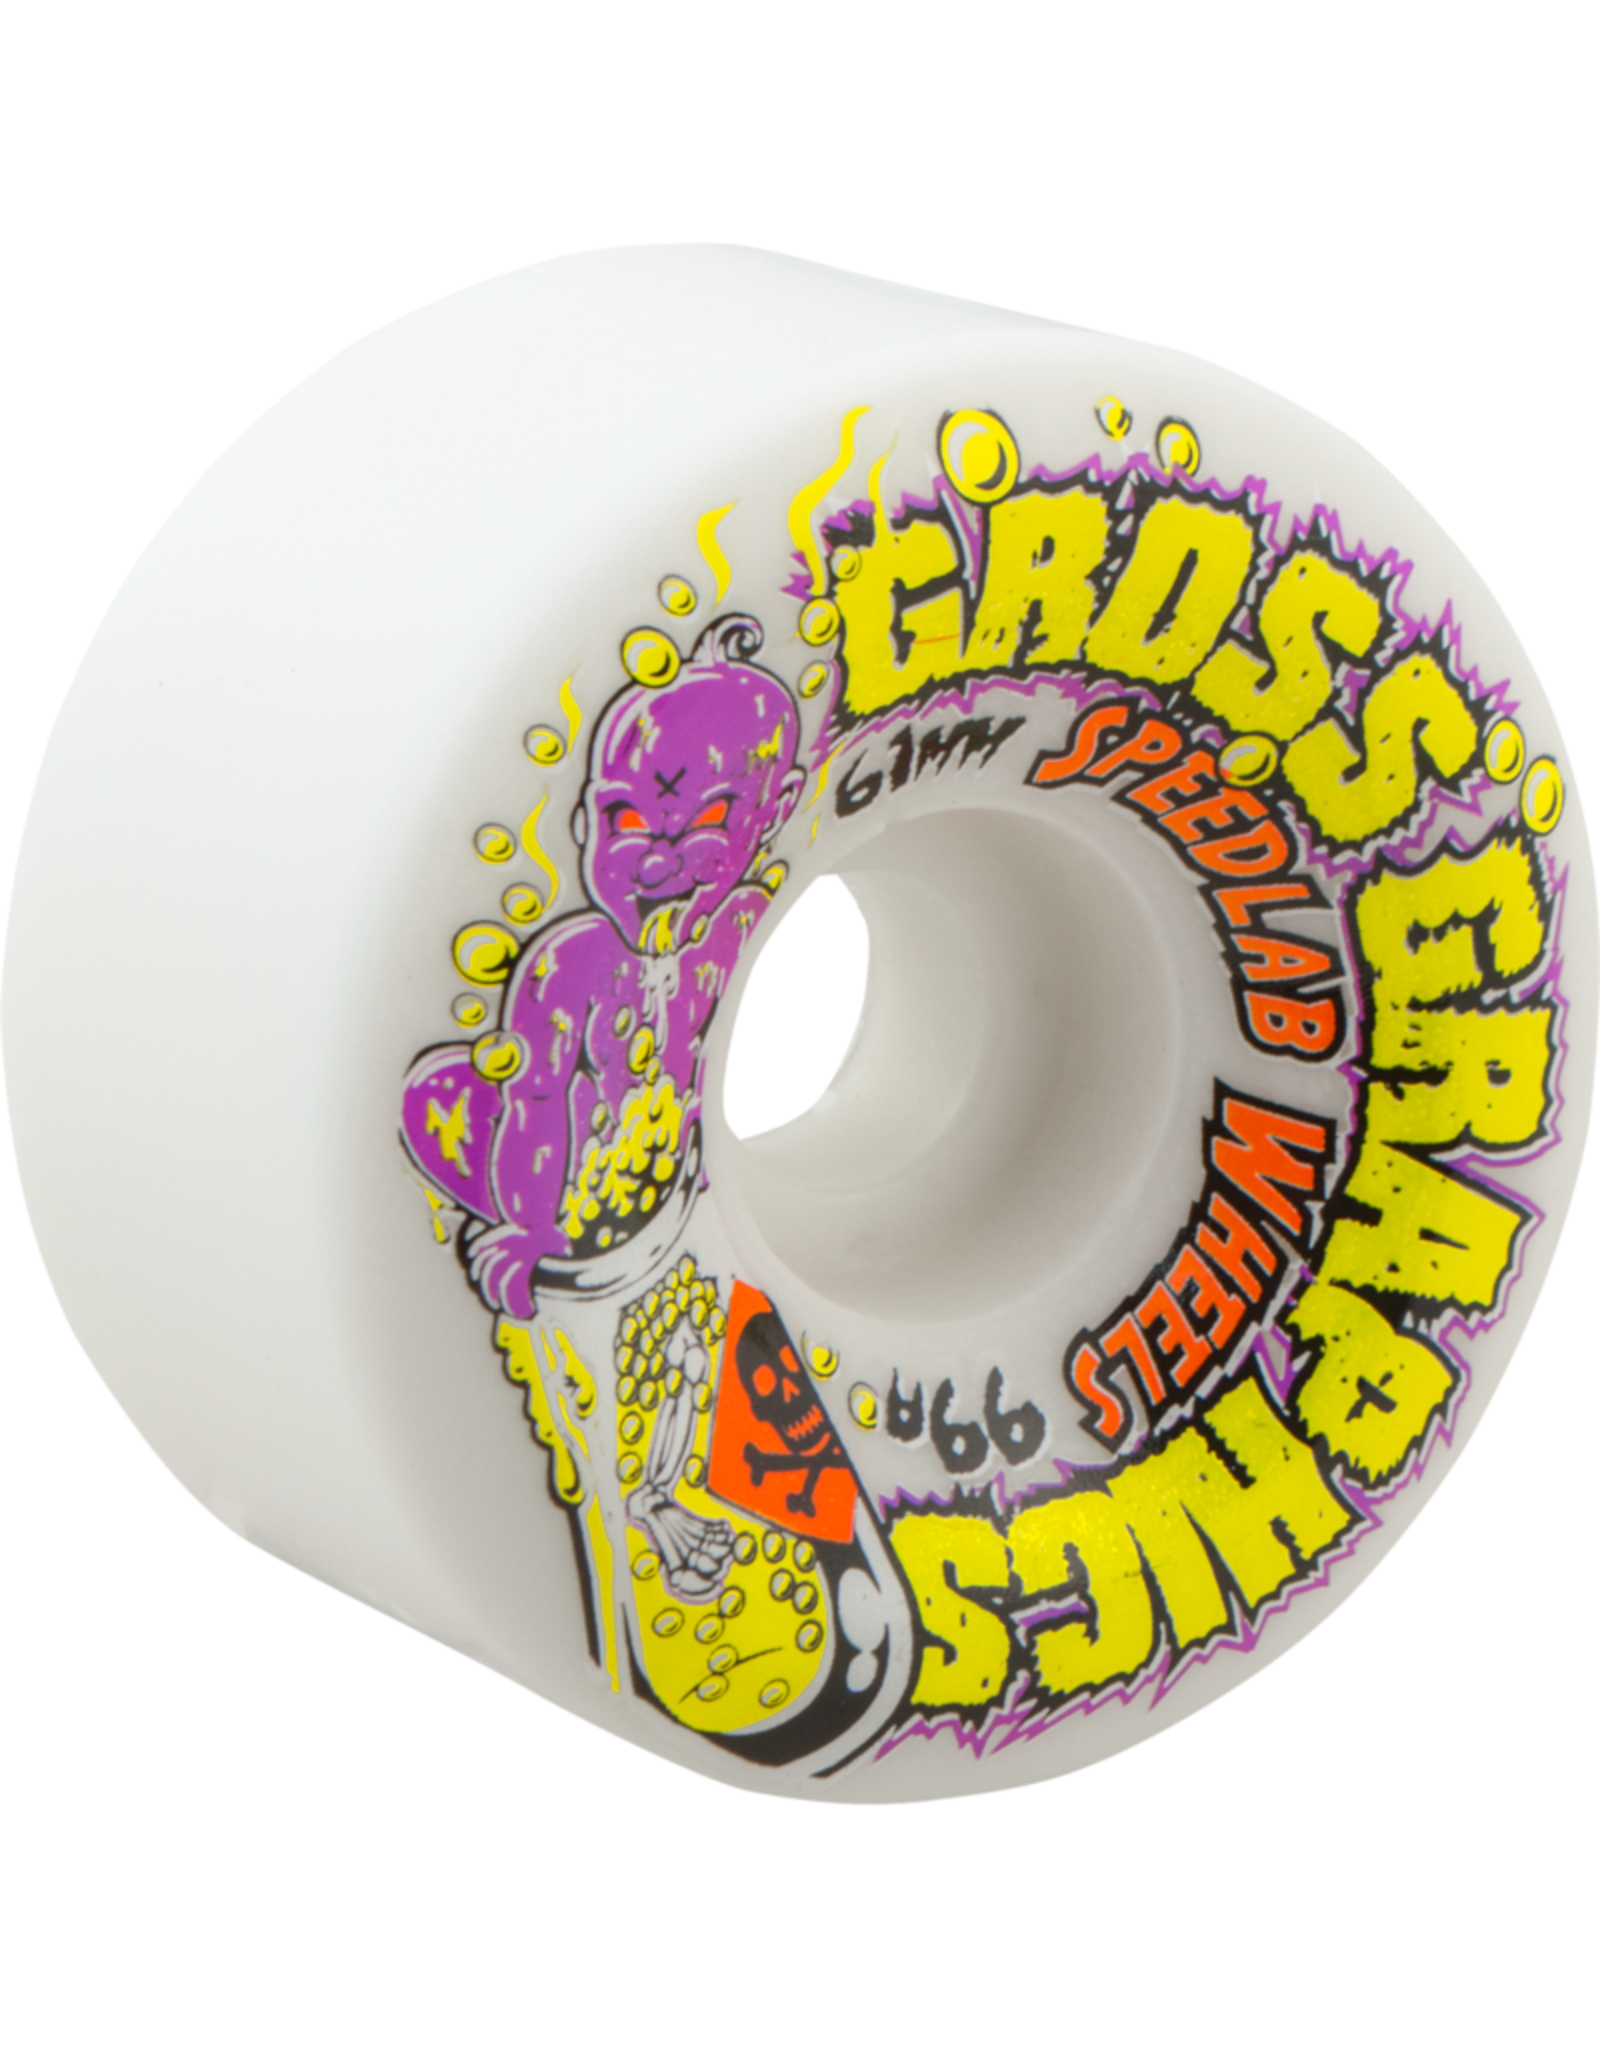 Speedlab Wheels SPEEDLAB ARTIST SERIES GROSS GRAPHICS 61MM 99A